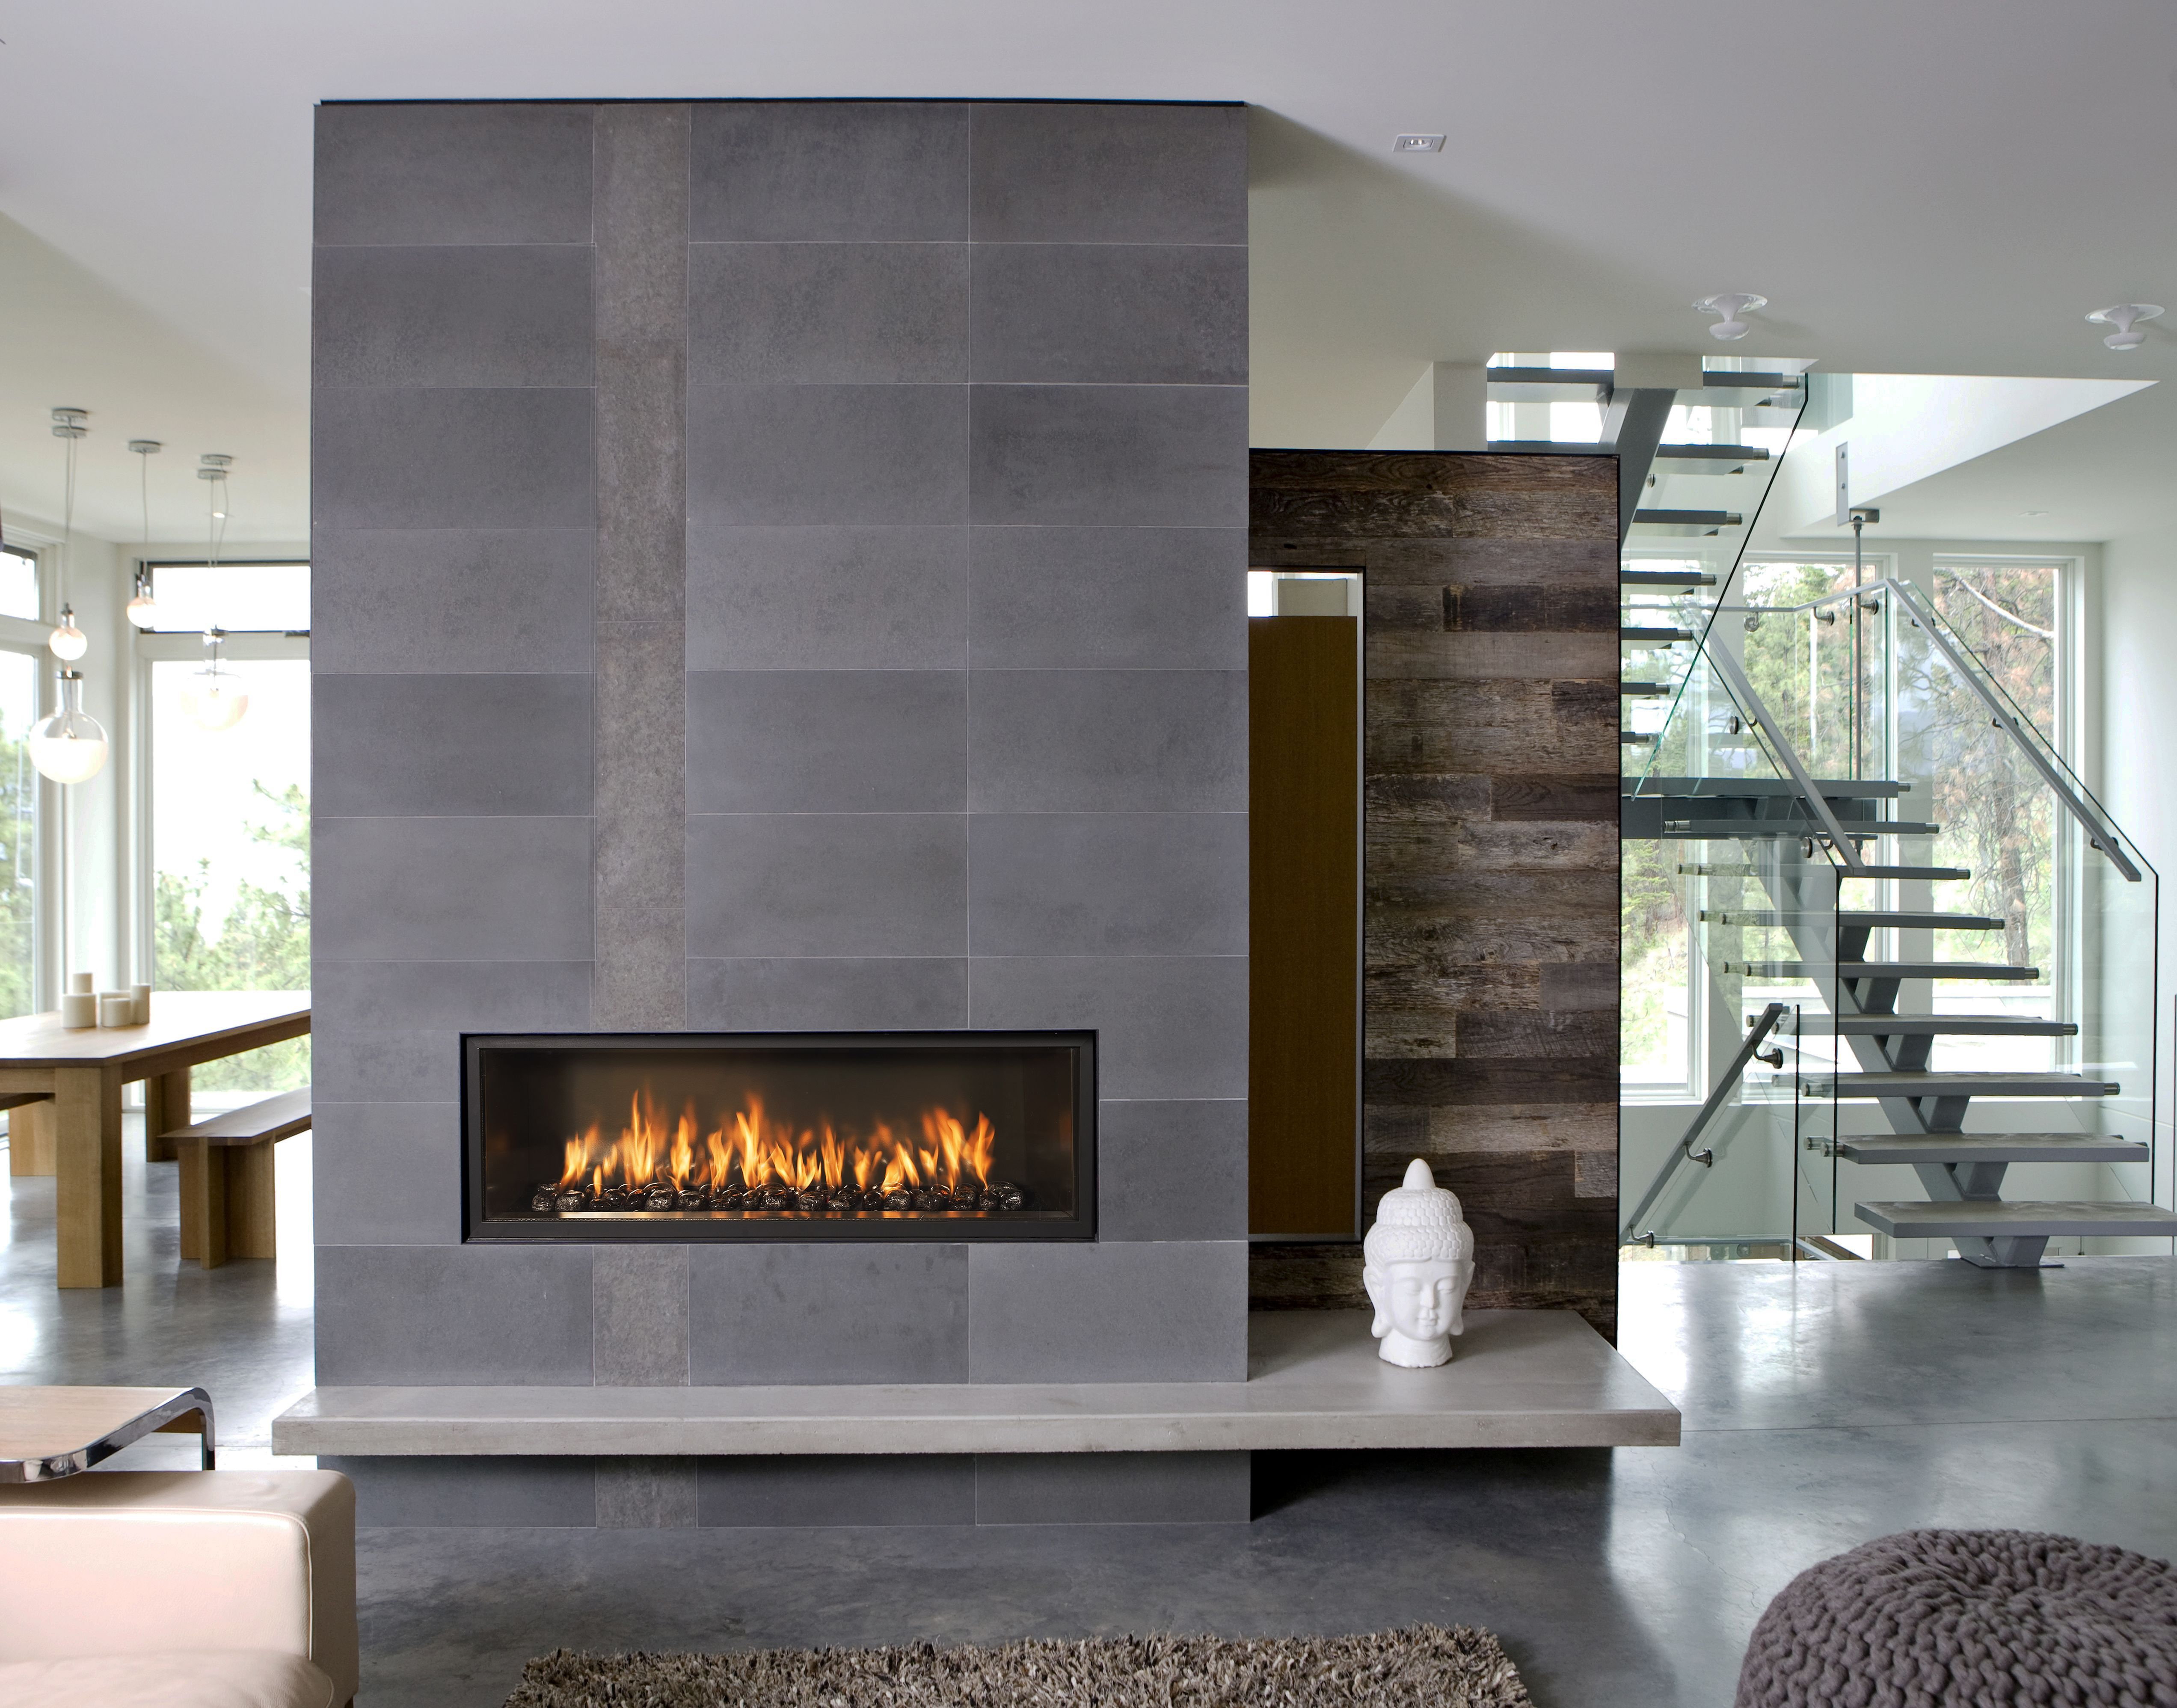 Marvelous Incredible Contemporary Fireplace Design Ideas (50 Best ...